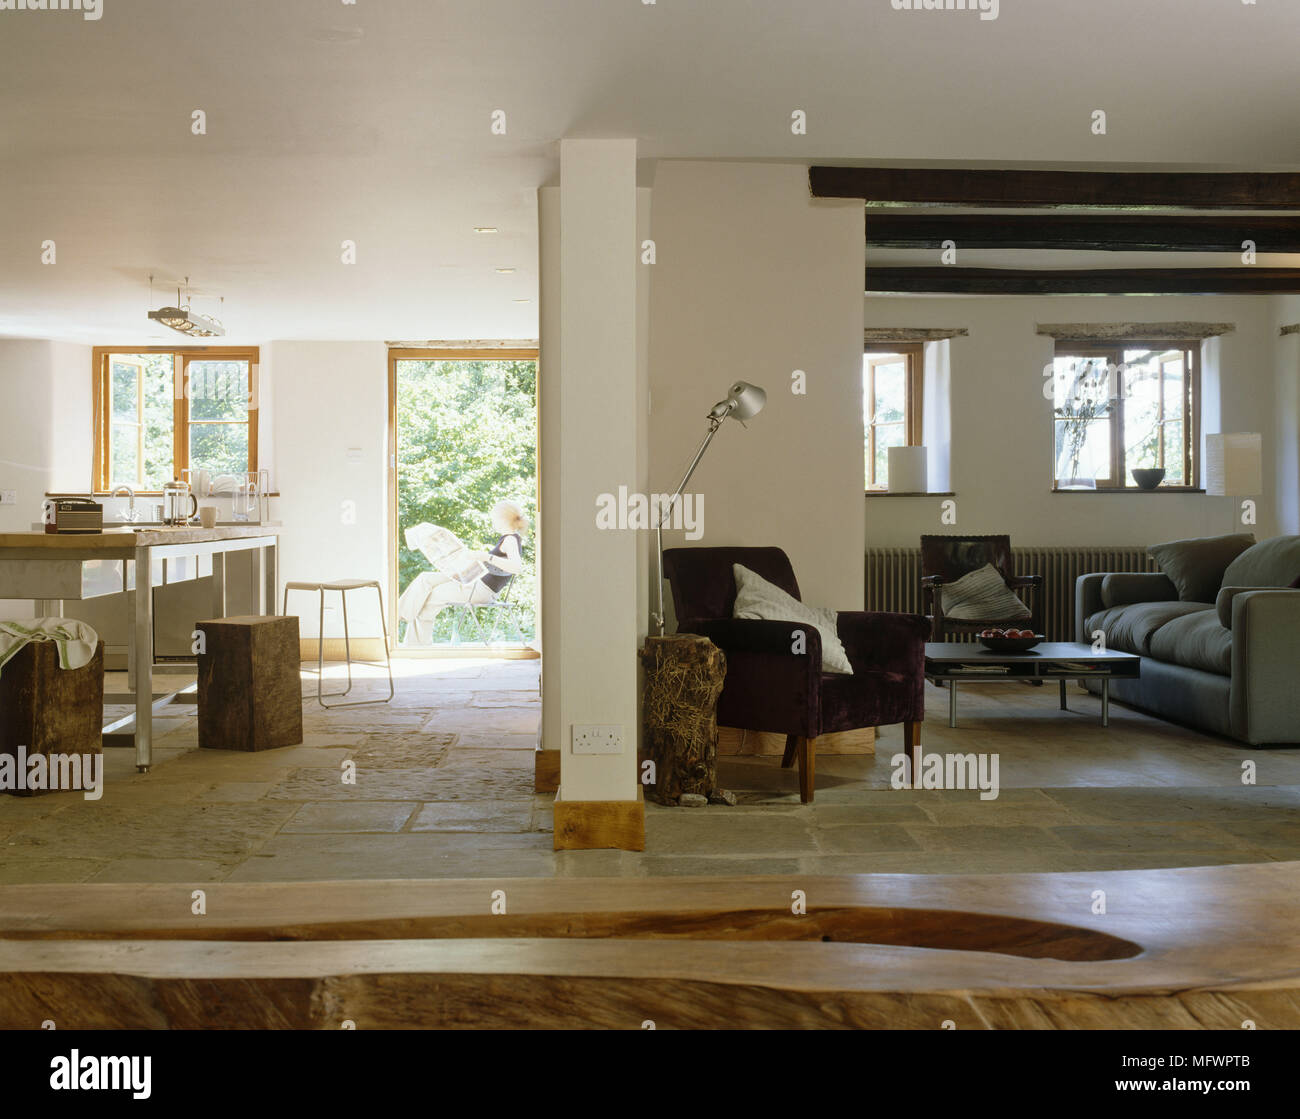 Wooden Bench In Front Of Sitting Room Area With Exposed Beams And Next To Dining Flagstone Floor